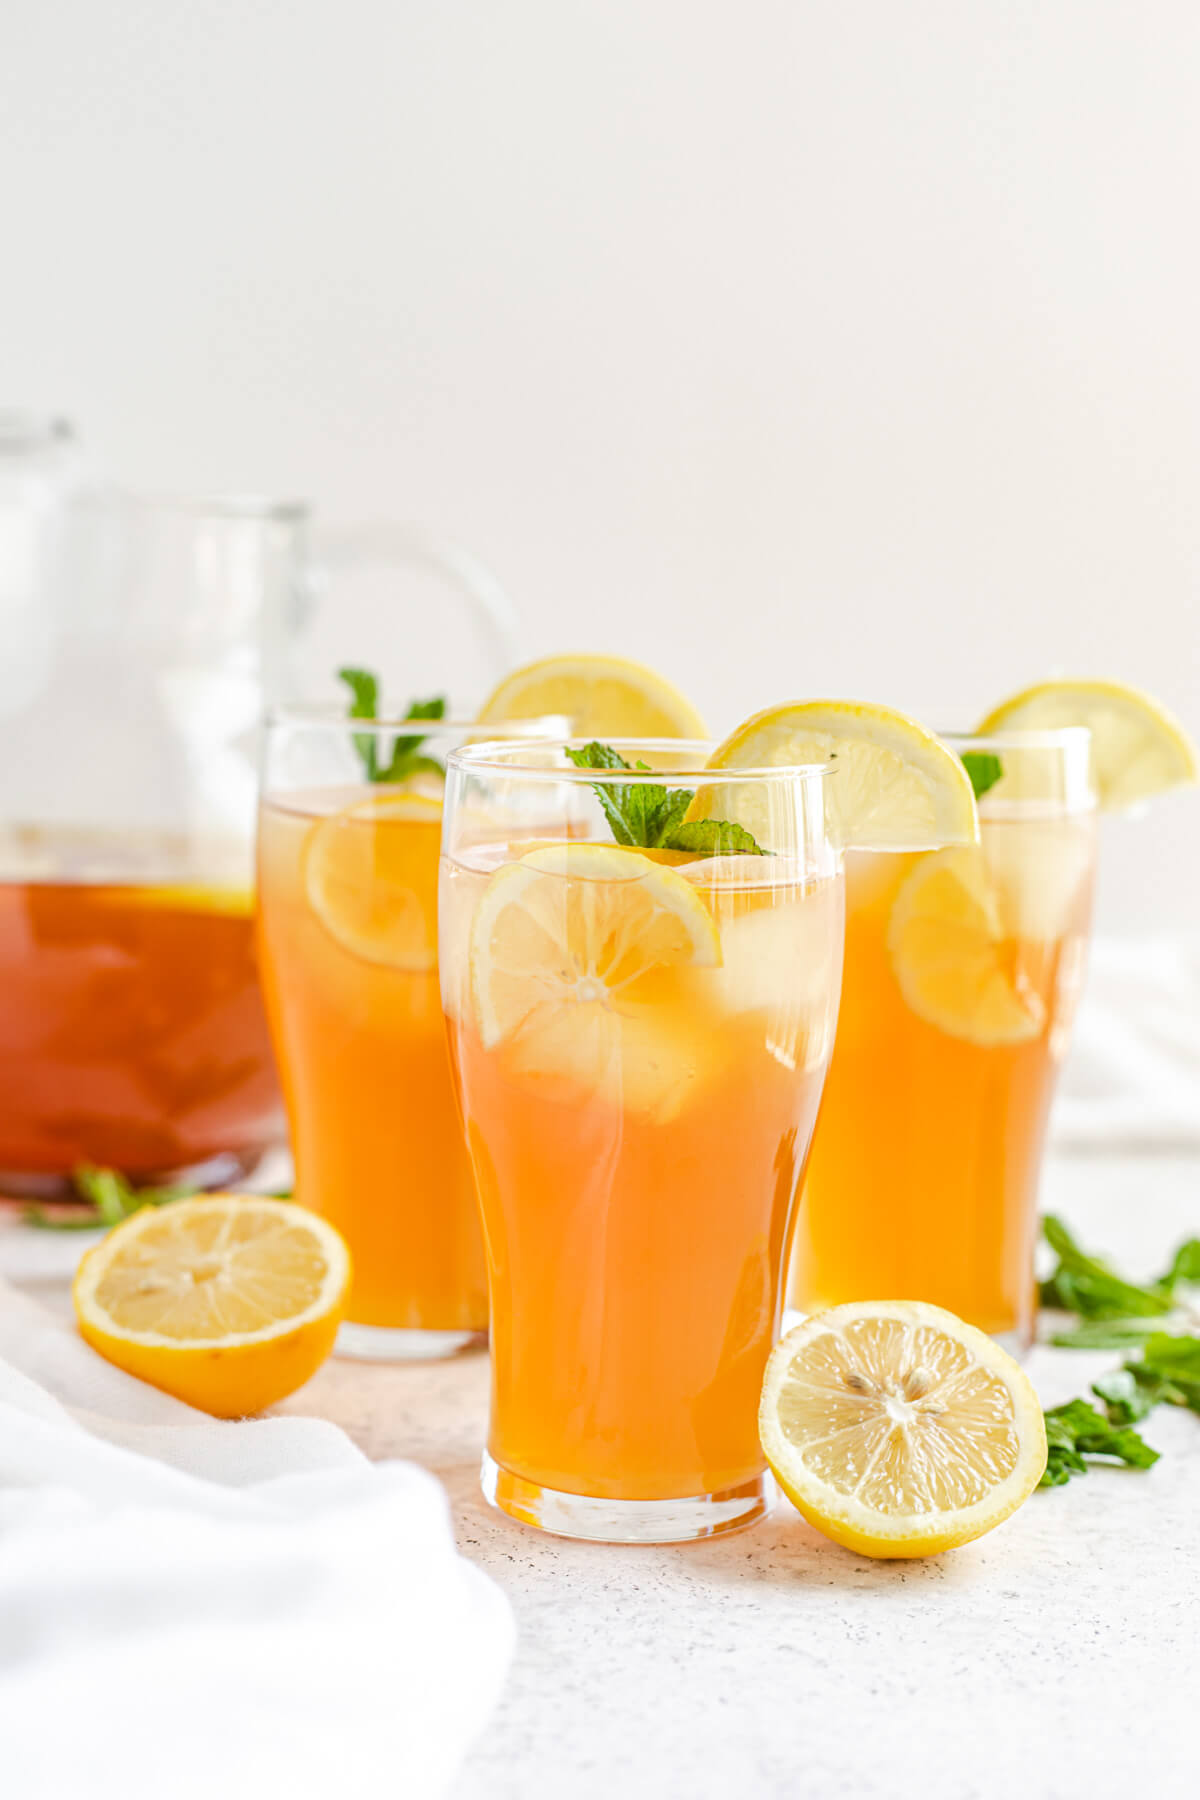 three glasses of iced tea with a glass pitcher in the background